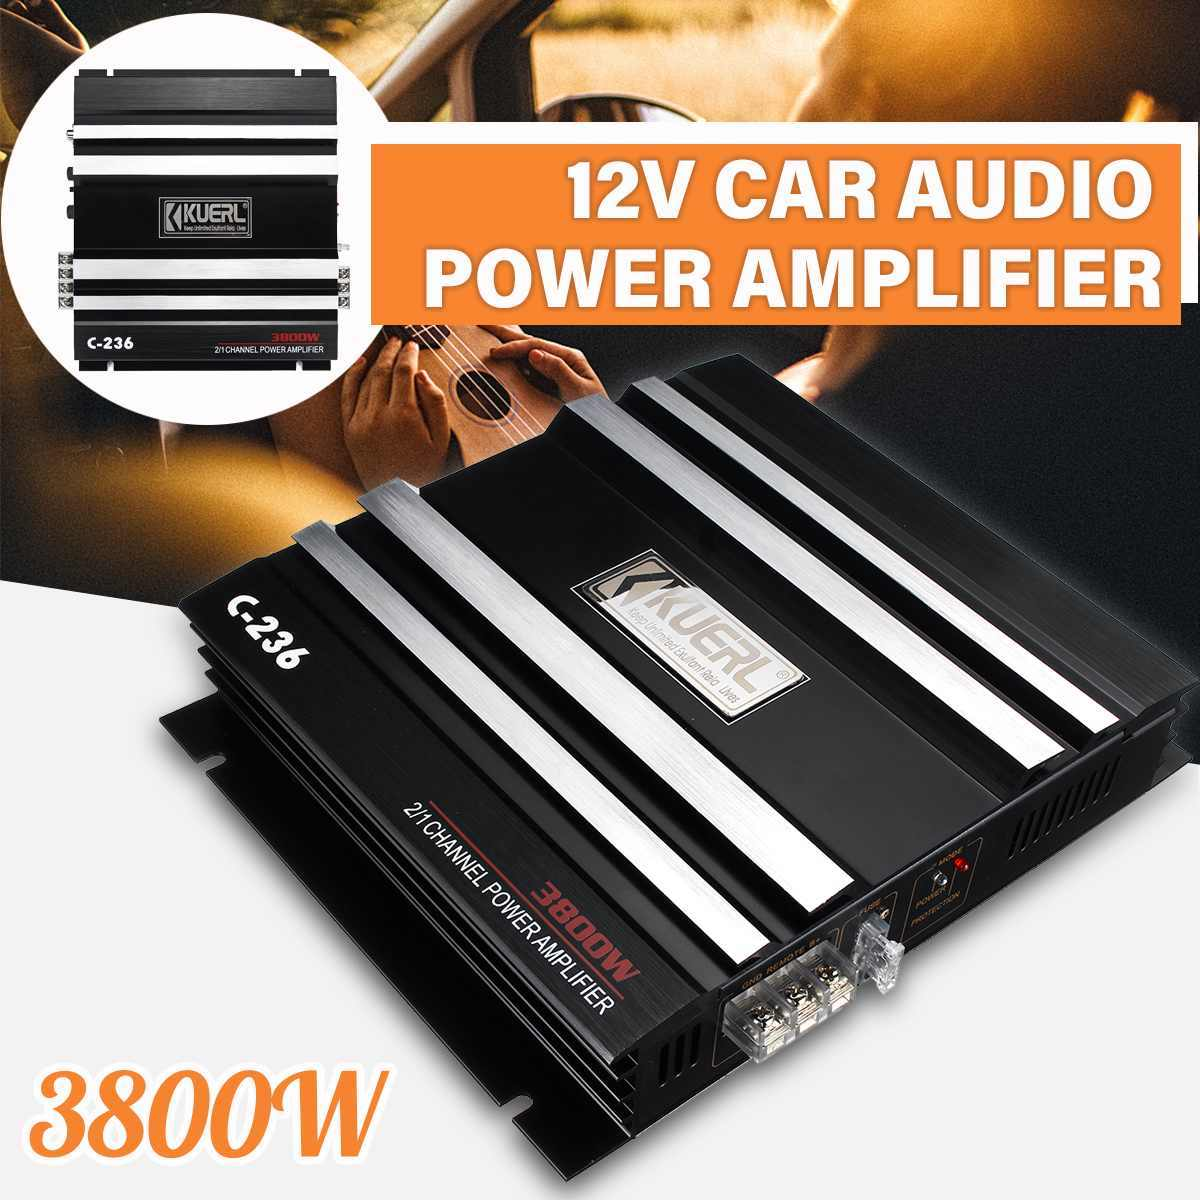 2 Channel 3800W Kelas Digital Hitam Sikat Logam Mobil Stereo Amplifier Universal Auto Audio Power Amplifier